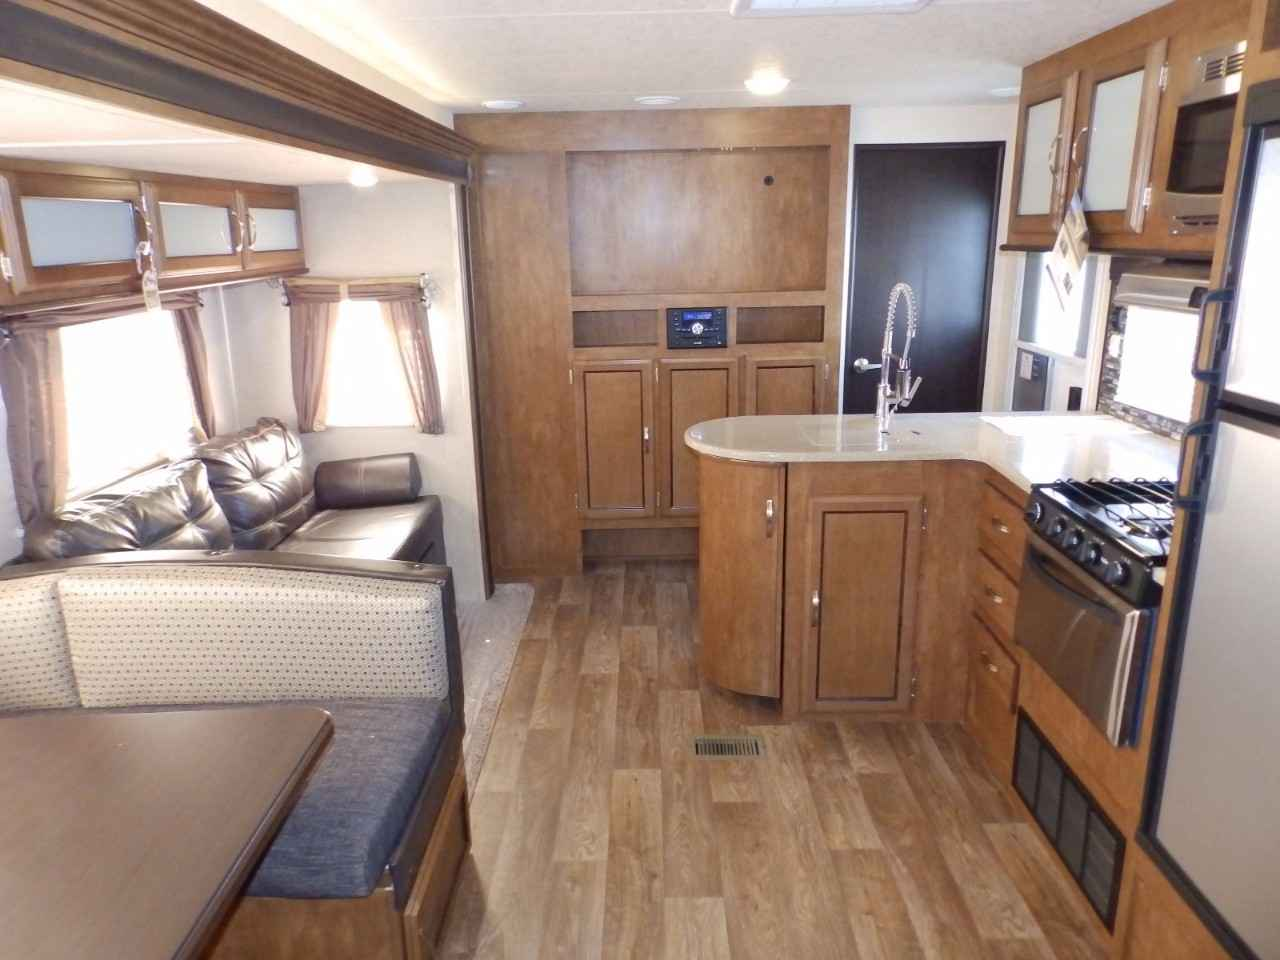 2018 New Forest River Salem 32bhds 2 Slides Exterior